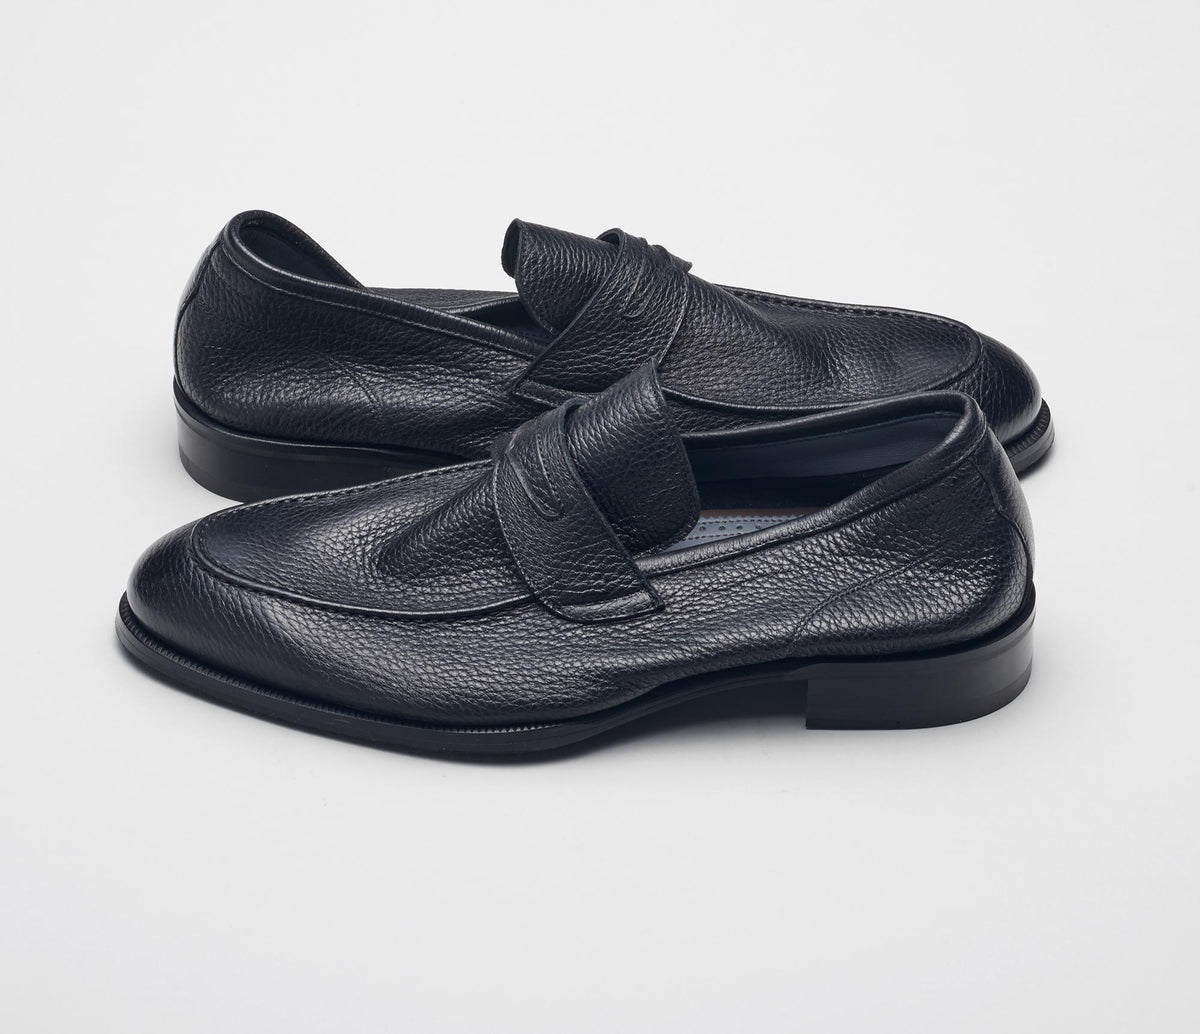 Brera Cervo Loafer in Nero